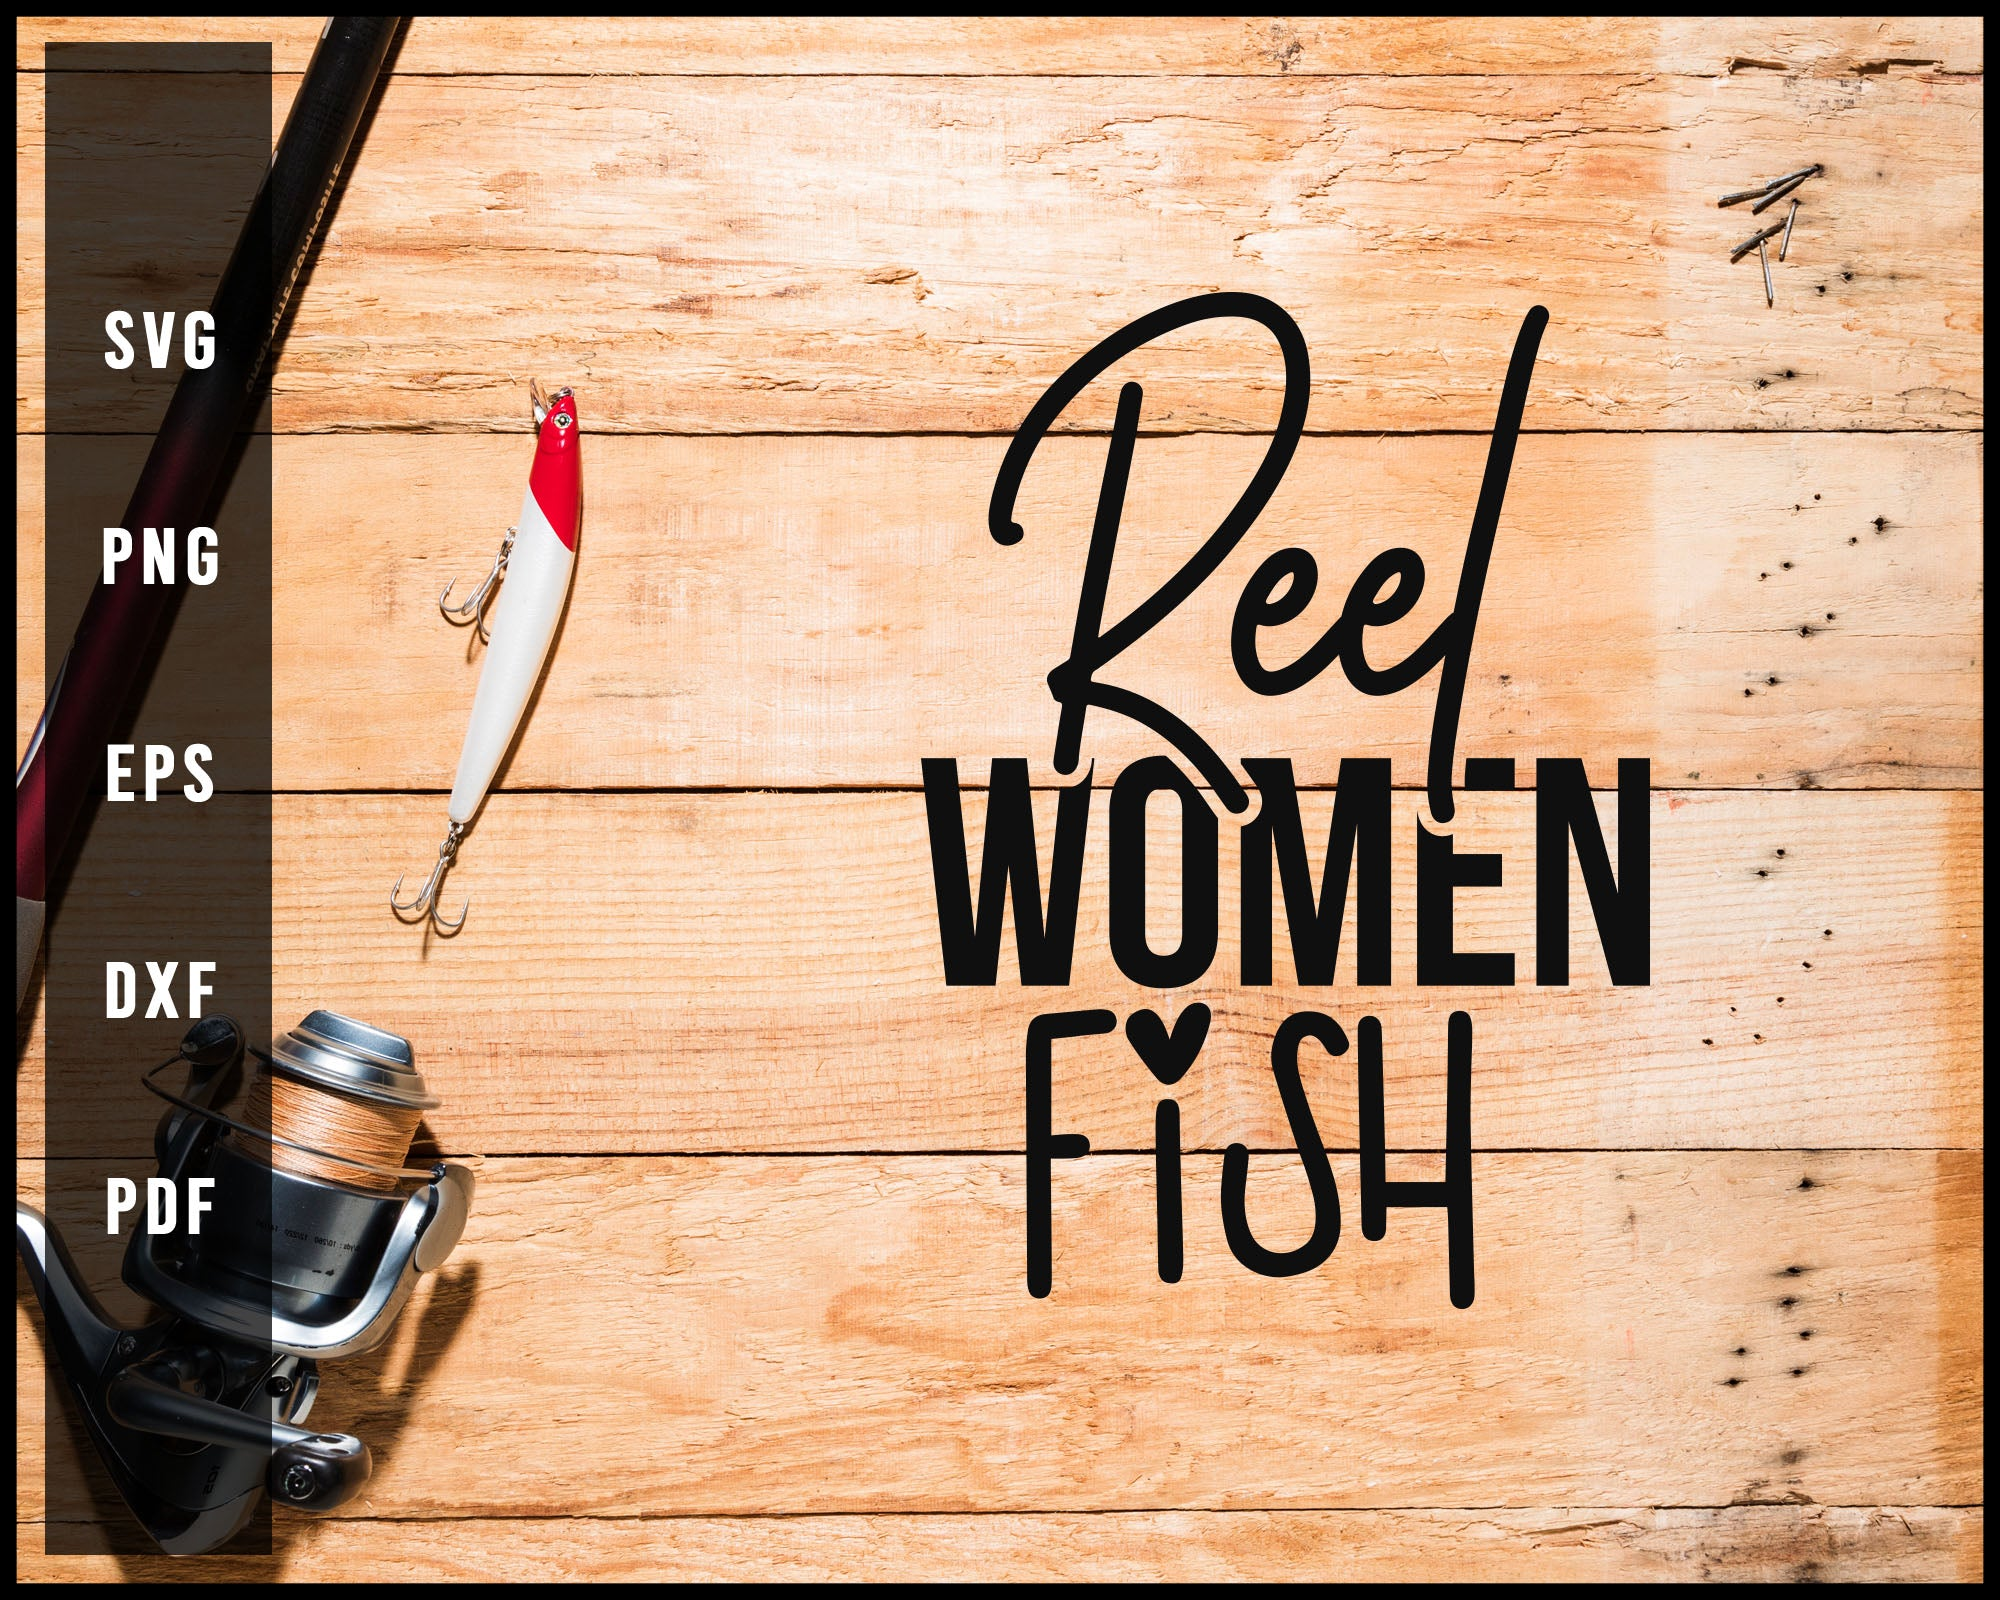 Reel Women Fish svg png Silhouette Designs For Cricut And Printable Files